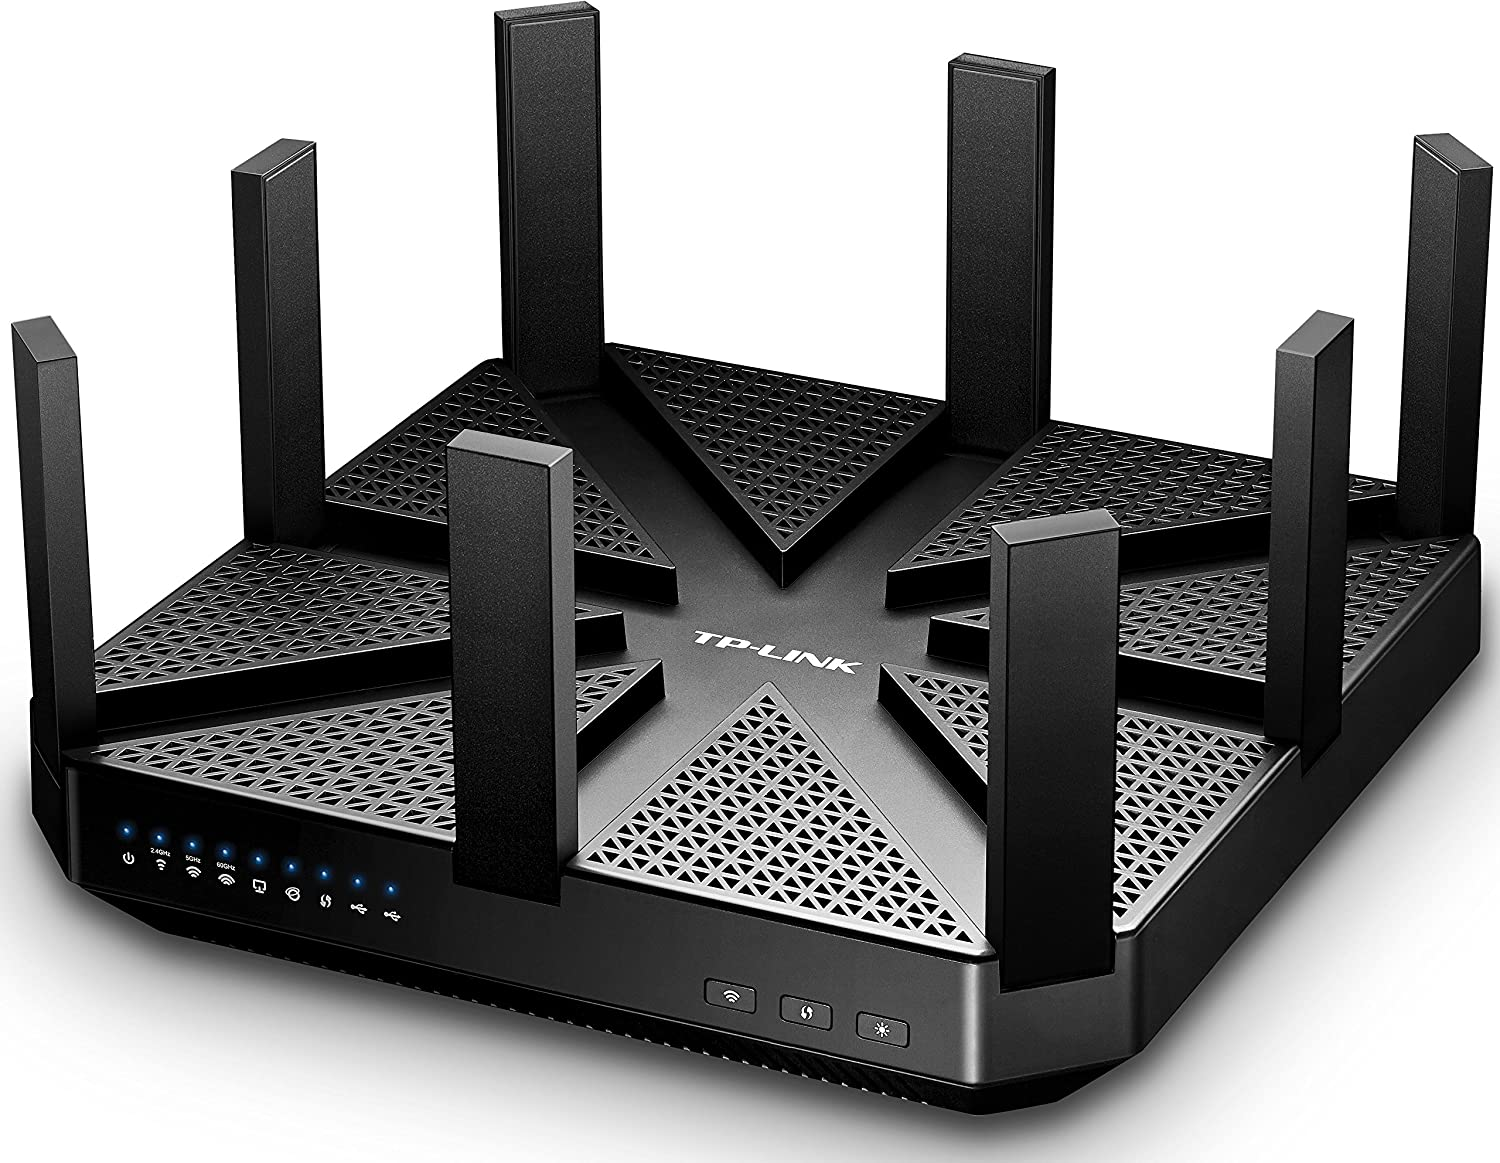 TP-Link Talon AD7200 Wireless Router Black Friday Deal 2019